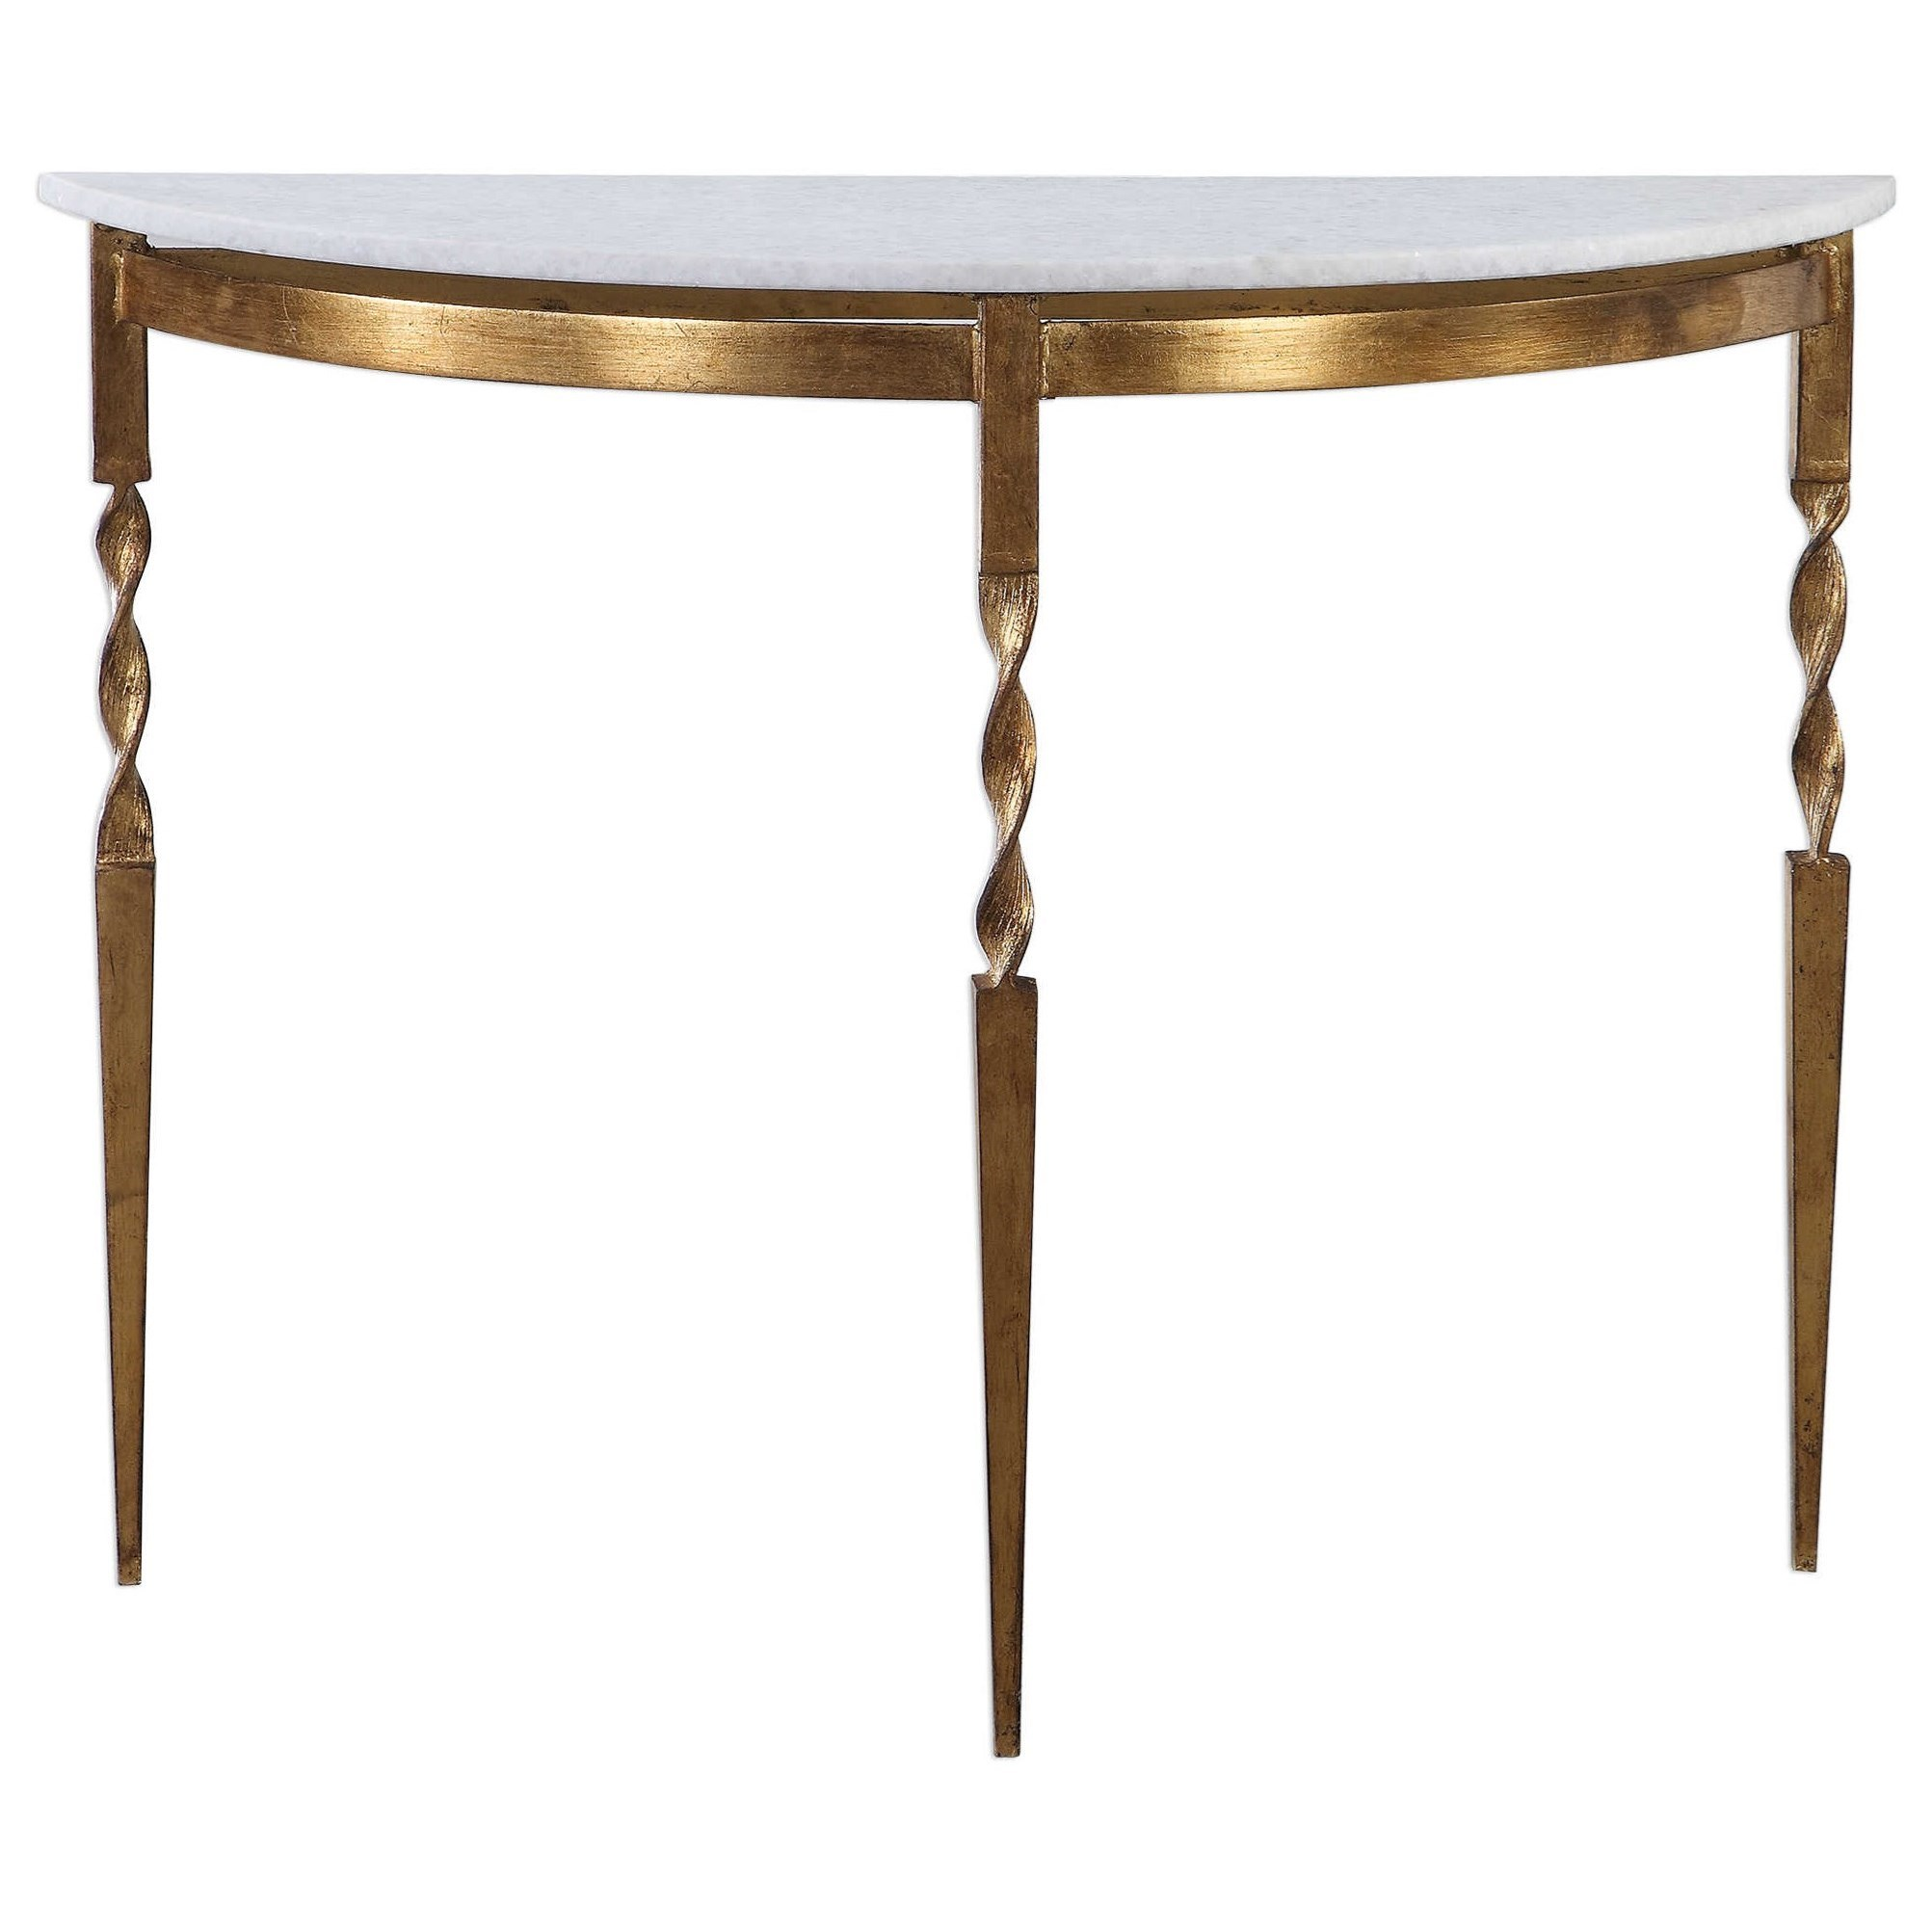 Accent Furniture - Occasional Tables Imelda Demilune Console Table by Uttermost at Upper Room Home Furnishings